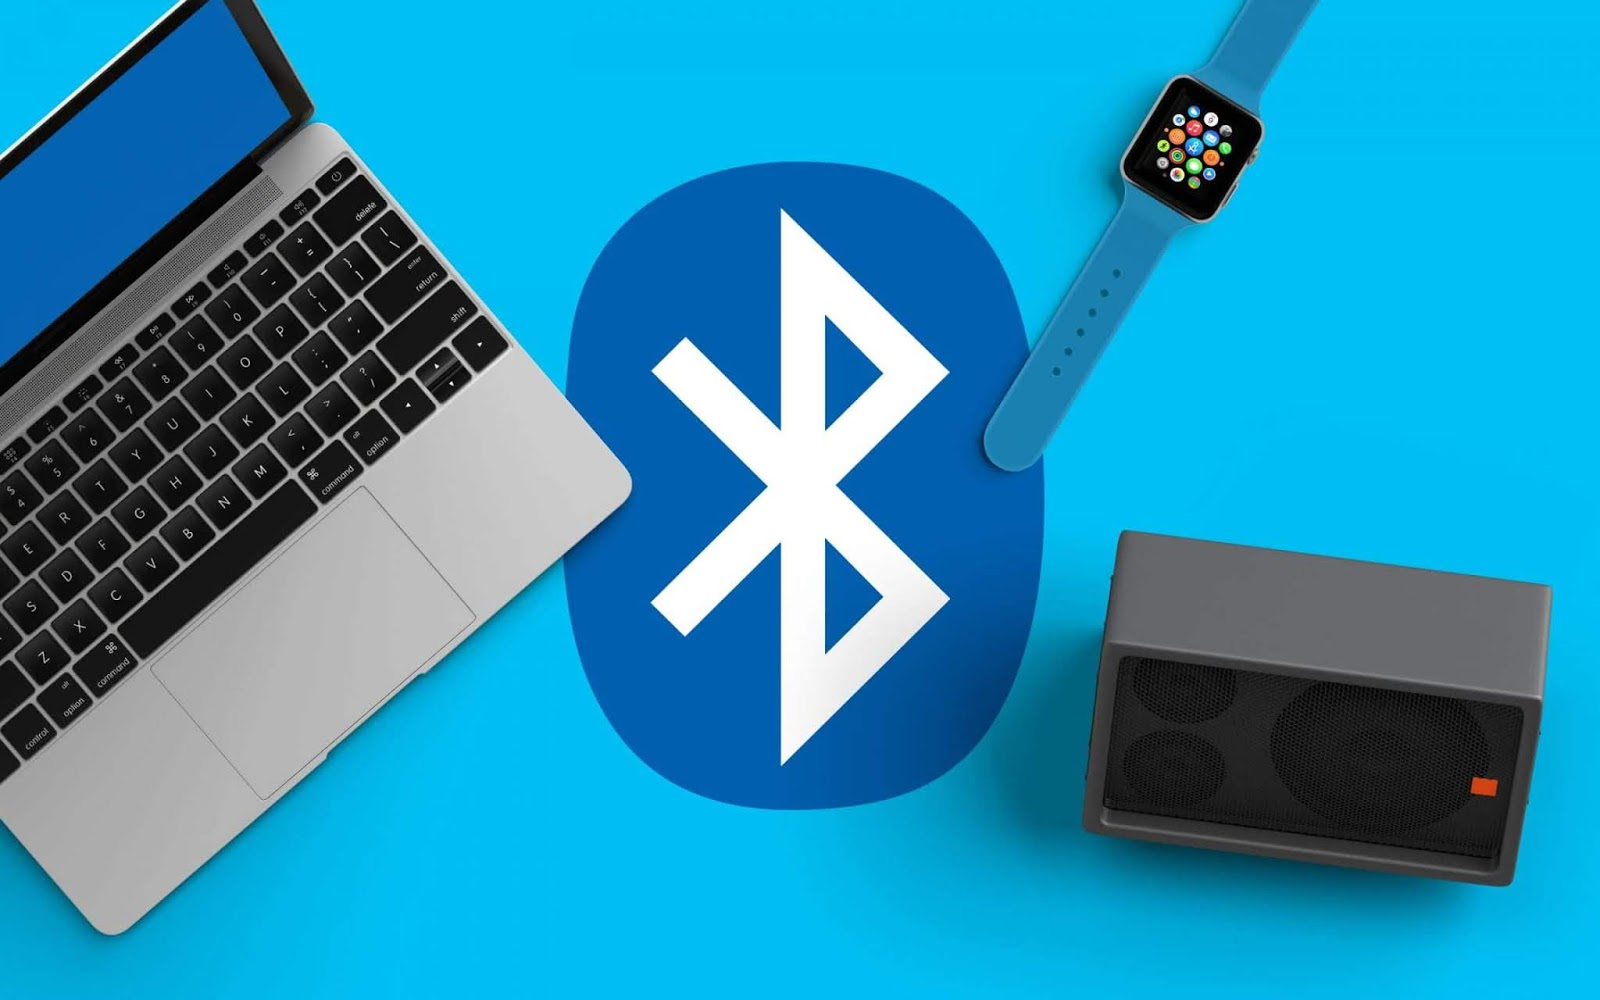 تحميل برنامج widcomm bluetooth software